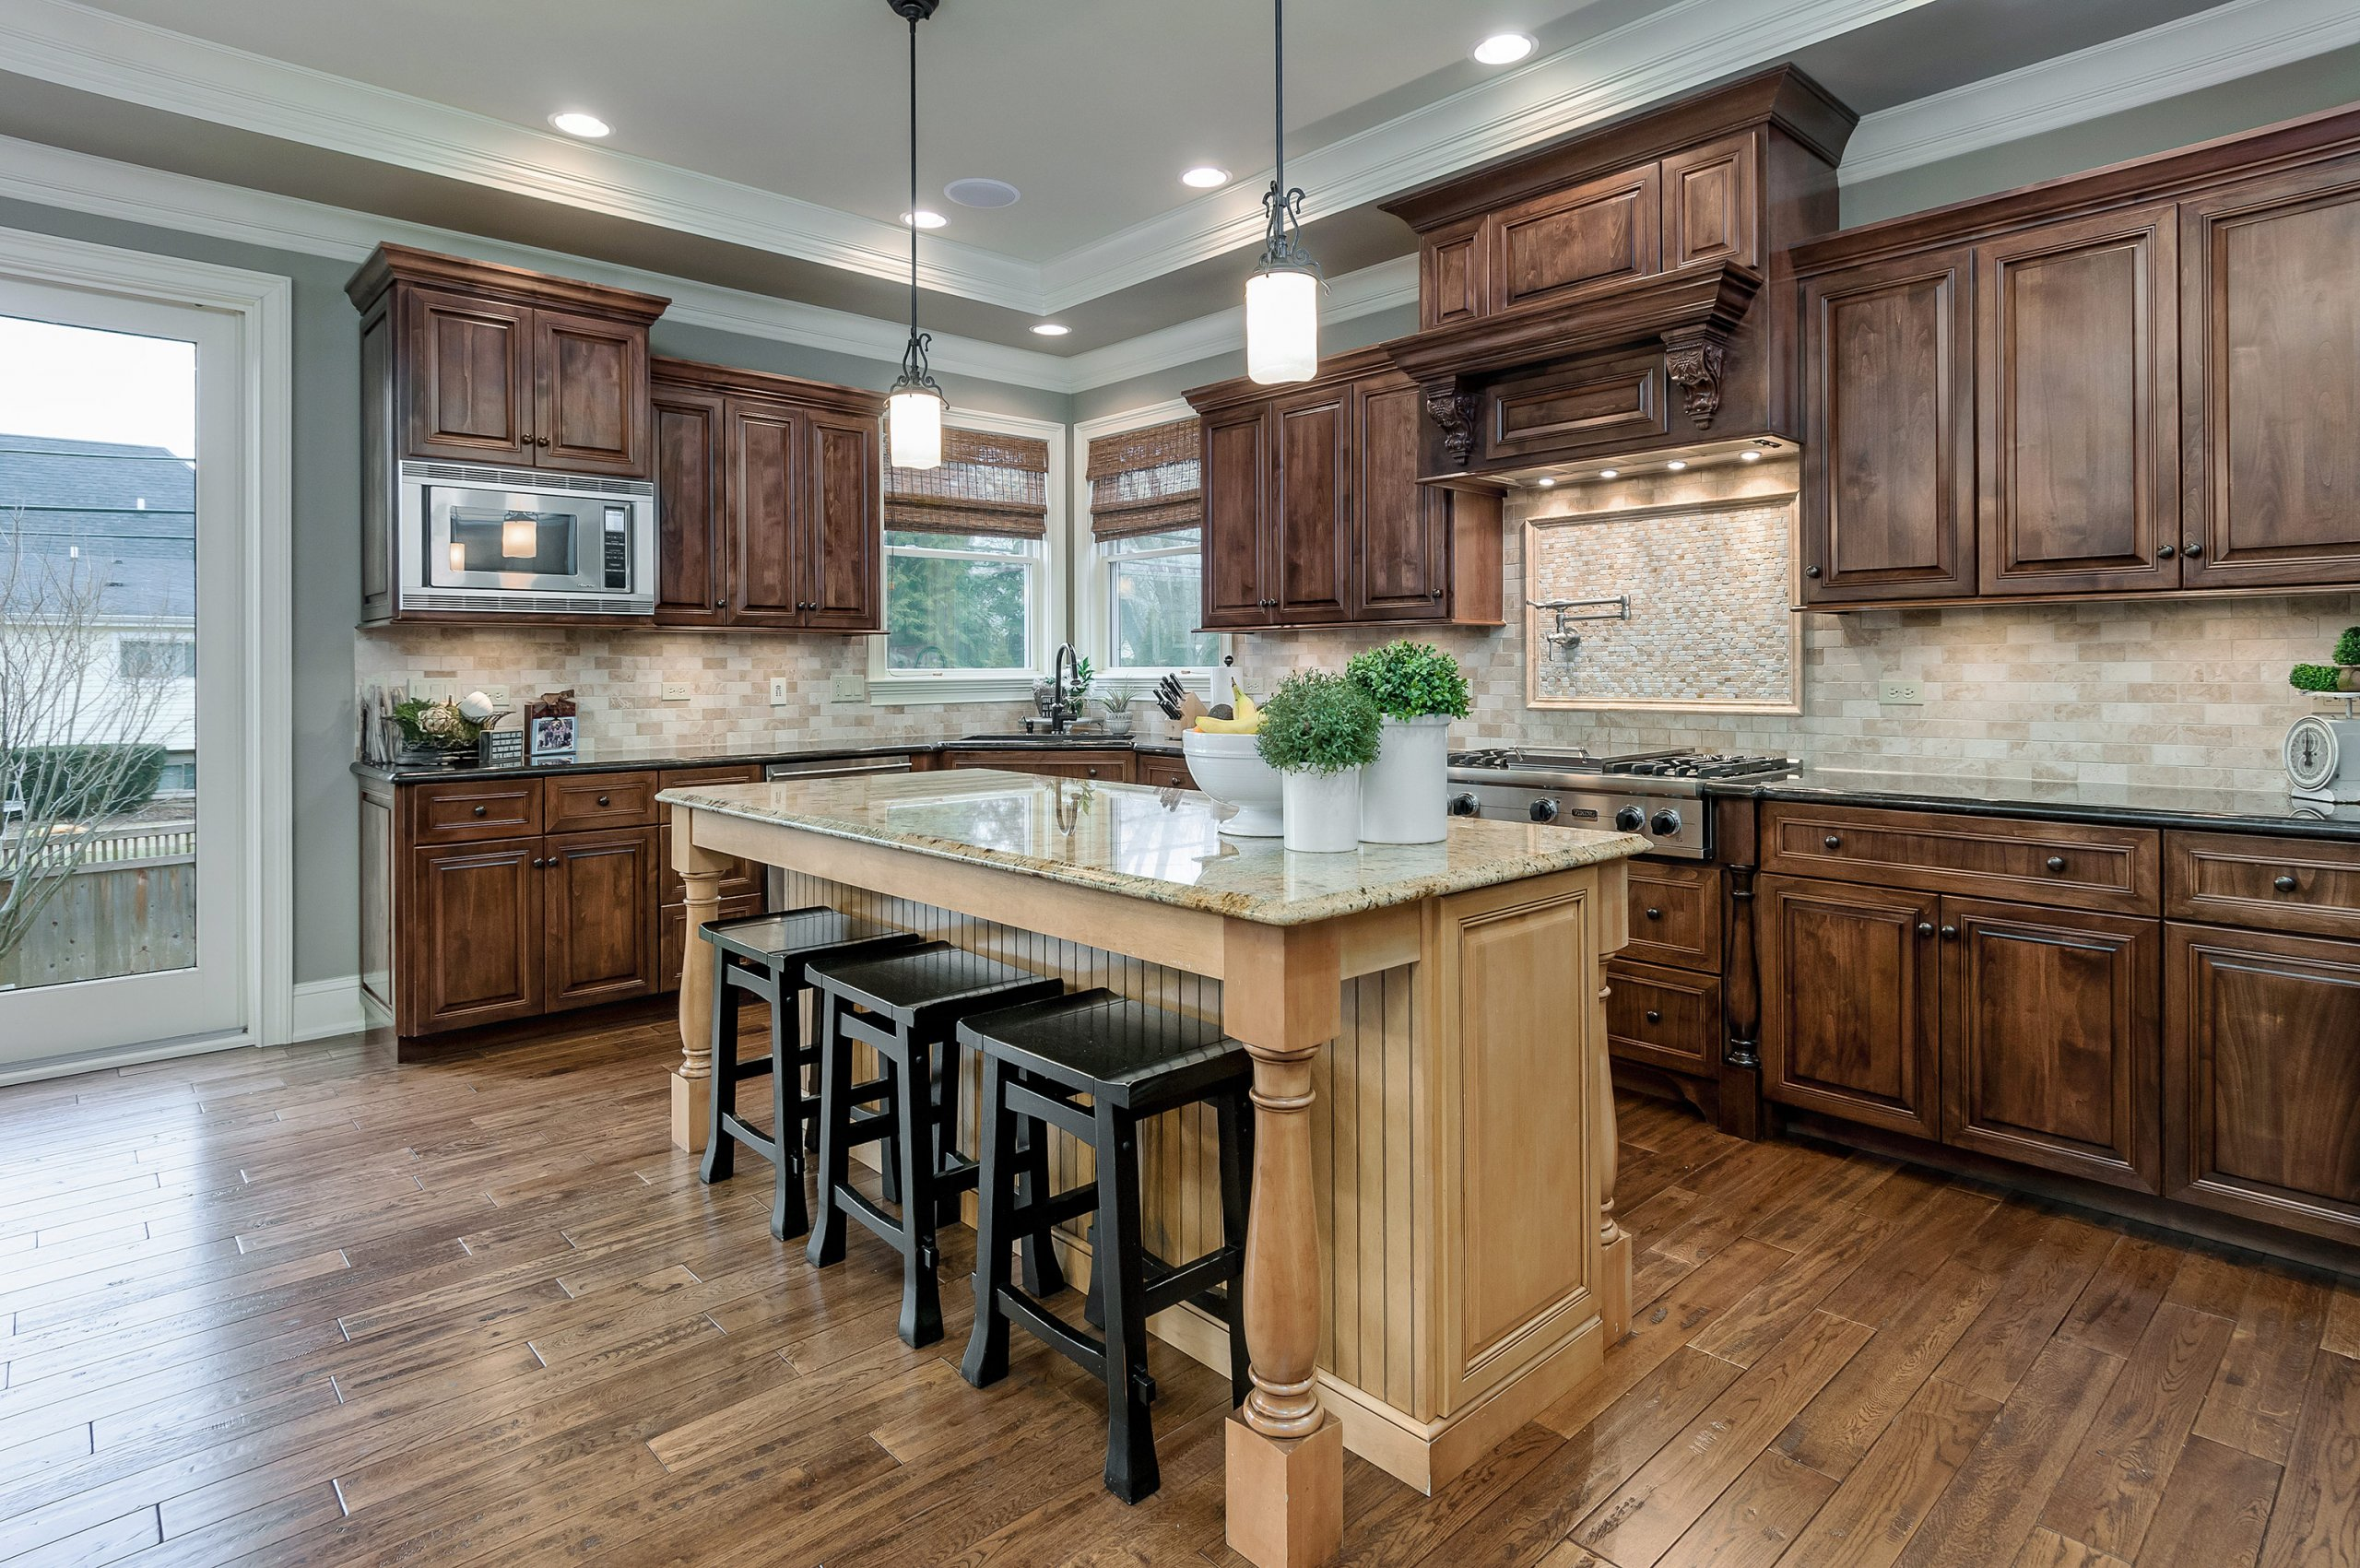 Luxurious, spacious kitchen in Naperville, IL luxury home.